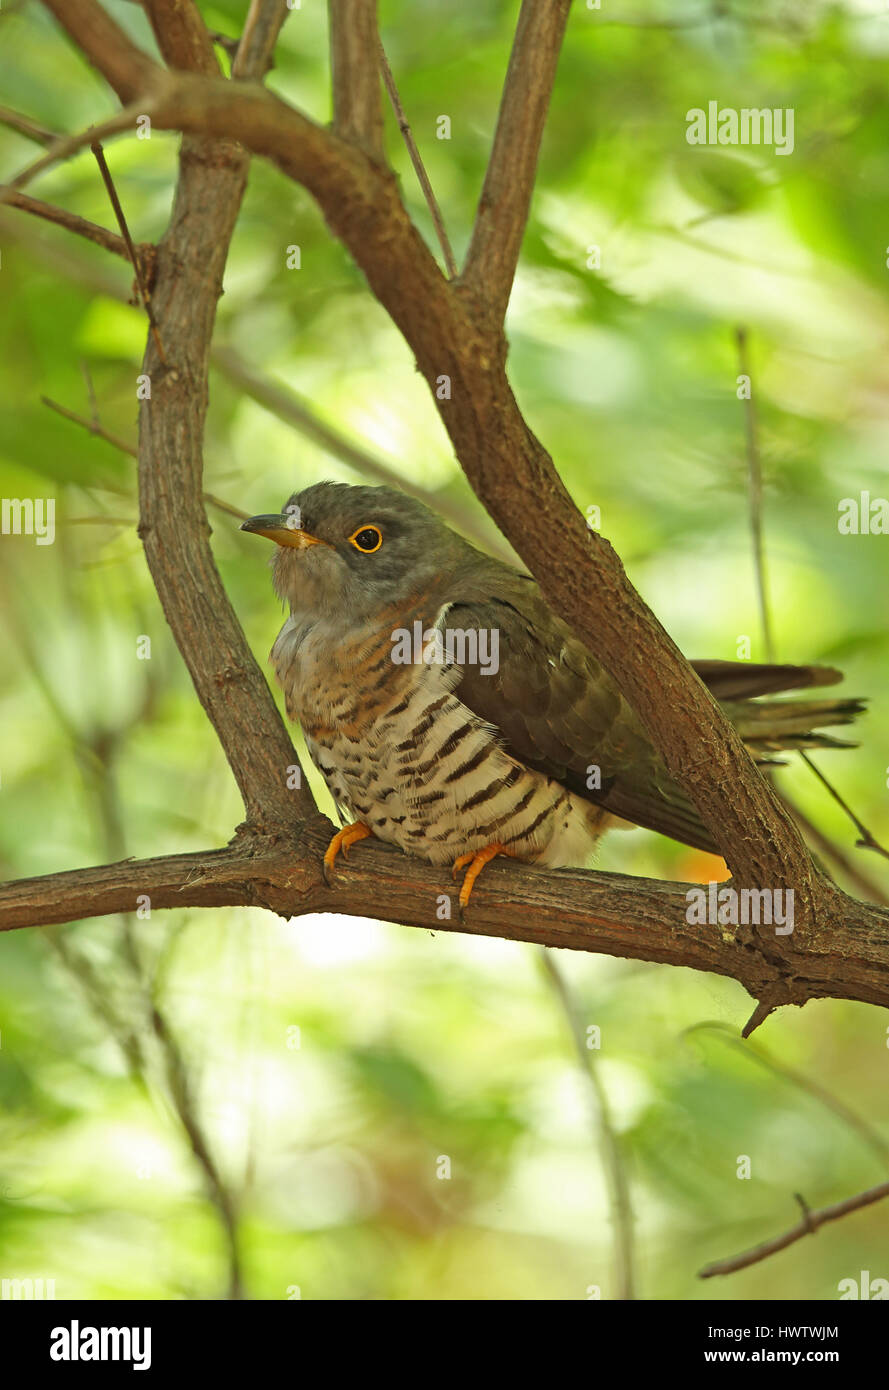 Indian Cuckoo (Cuculus micropterus micropterus) adult perched on branch  Beidaihe, Hebei, China       May - Stock Image